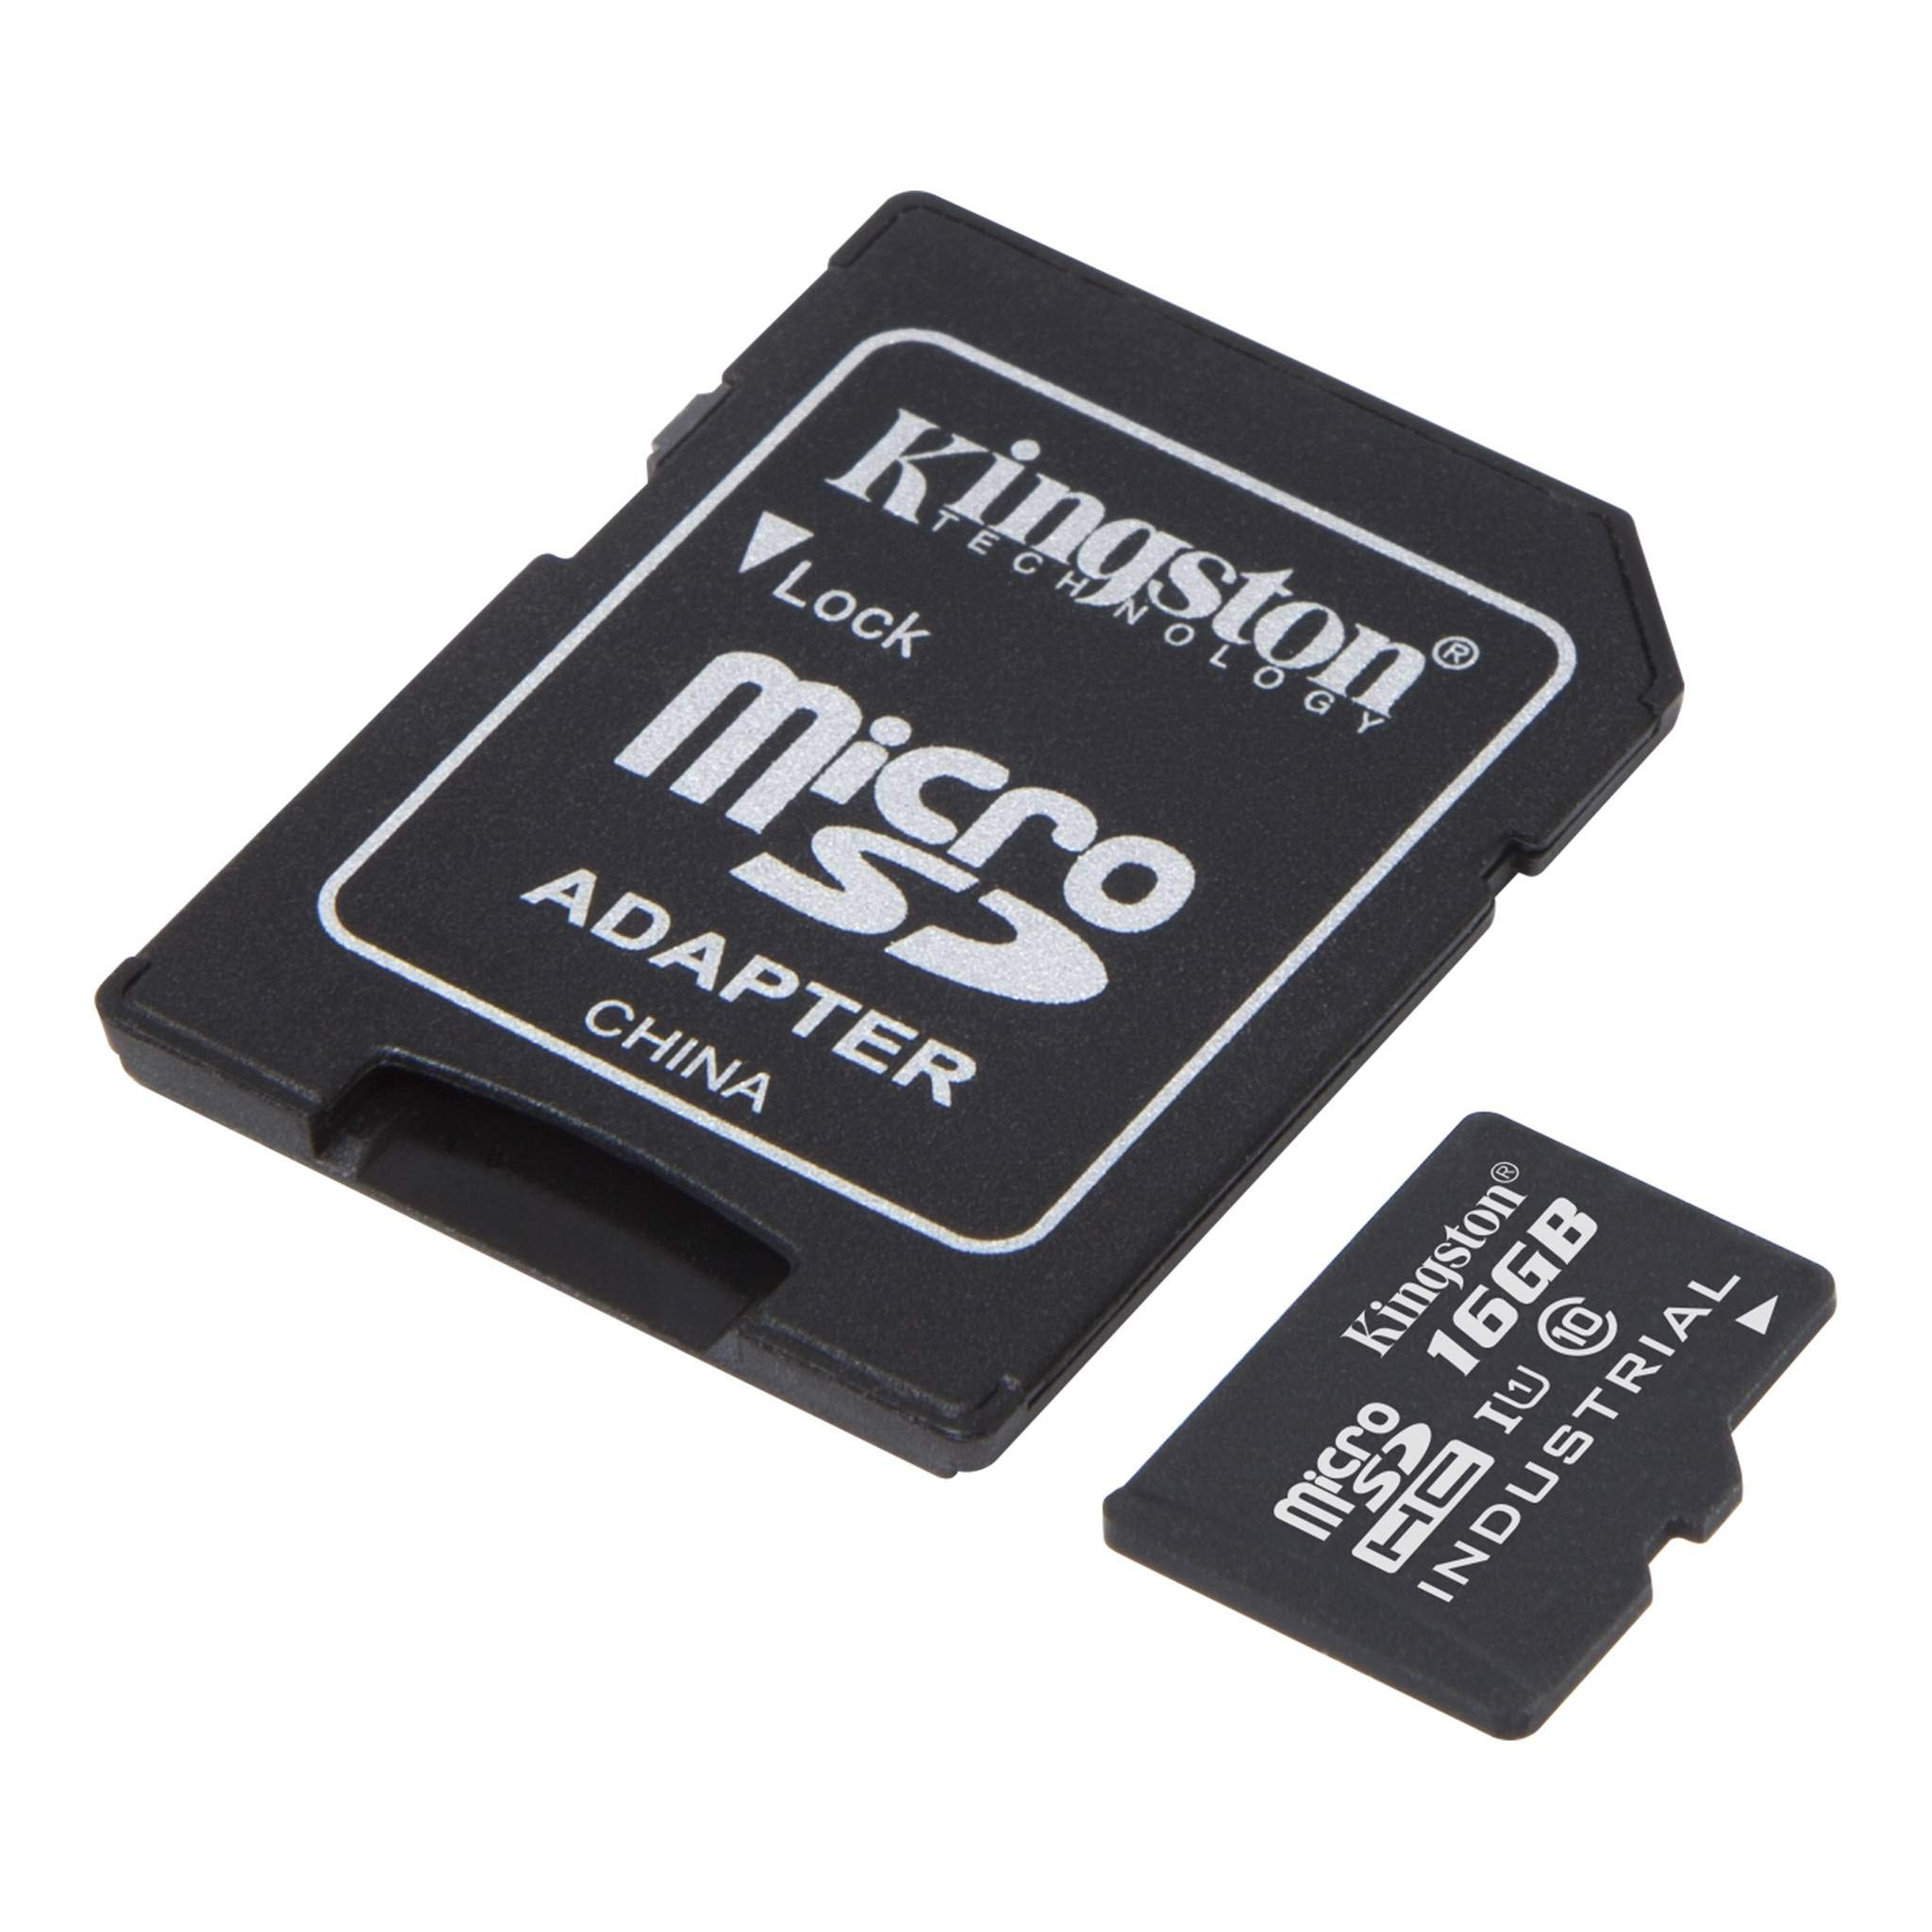 Kingston Industrial Grade 32GB Sony Xperia Pepper MicroSDHC Card Verified by SanFlash. 90MBs Works for Kingston